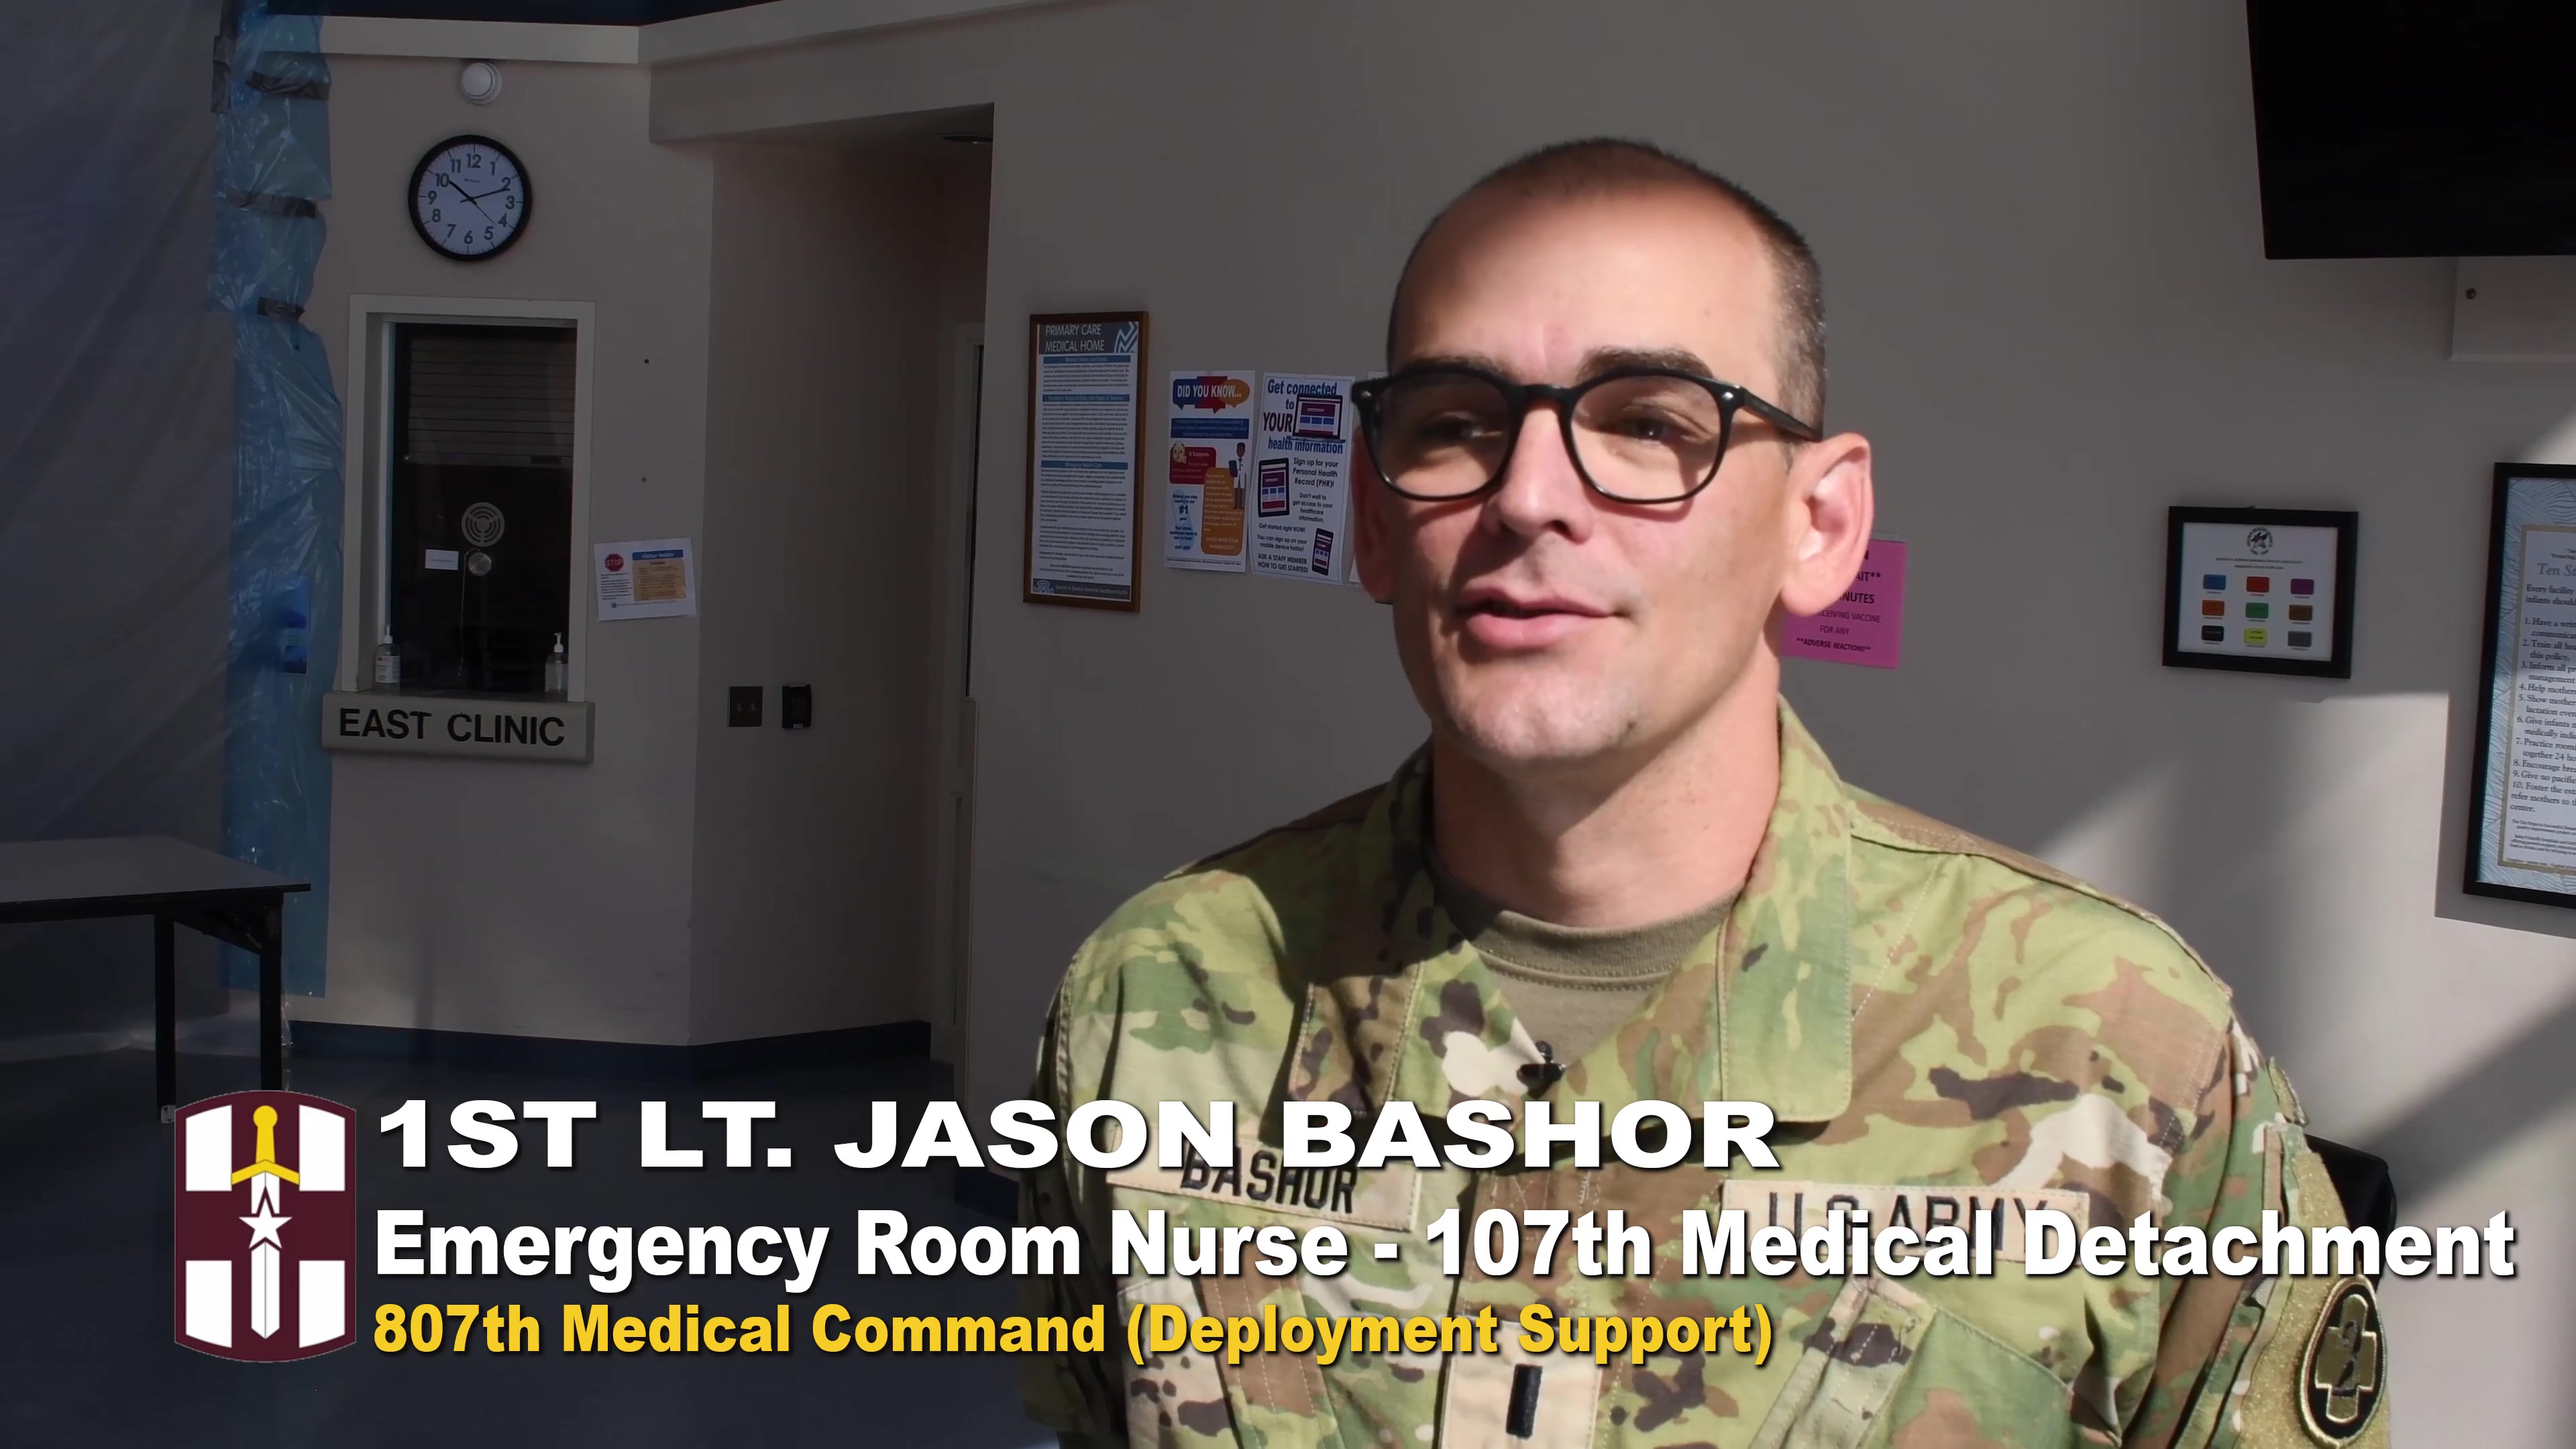 In Belcourt, North Dakota, a team of Army Reserve Medical Command Soldiers are participating in an Innovative Readiness Training event. The Soldiers are augmenting the Quentin N Burdick Memorial Healthcare Facility on the Turtle Mountain Reservation, and partnering with the Turtle Mountain Animal Rescue, to expand community access to medical and veterinary care.   The Turtle Mountain community applied and was selected to participate in the Department of Defense program to support the tribal population of more than 14,000 Chippewa of the 72 square mile reservation.   Innovative Readiness Training events provide mission-essential training for Active, Guard, and Reserve support personnel and units, strengthen the bond between American Citizens and the U.S. Military and contribute to American prosperity by meeting public and civil-society needs.